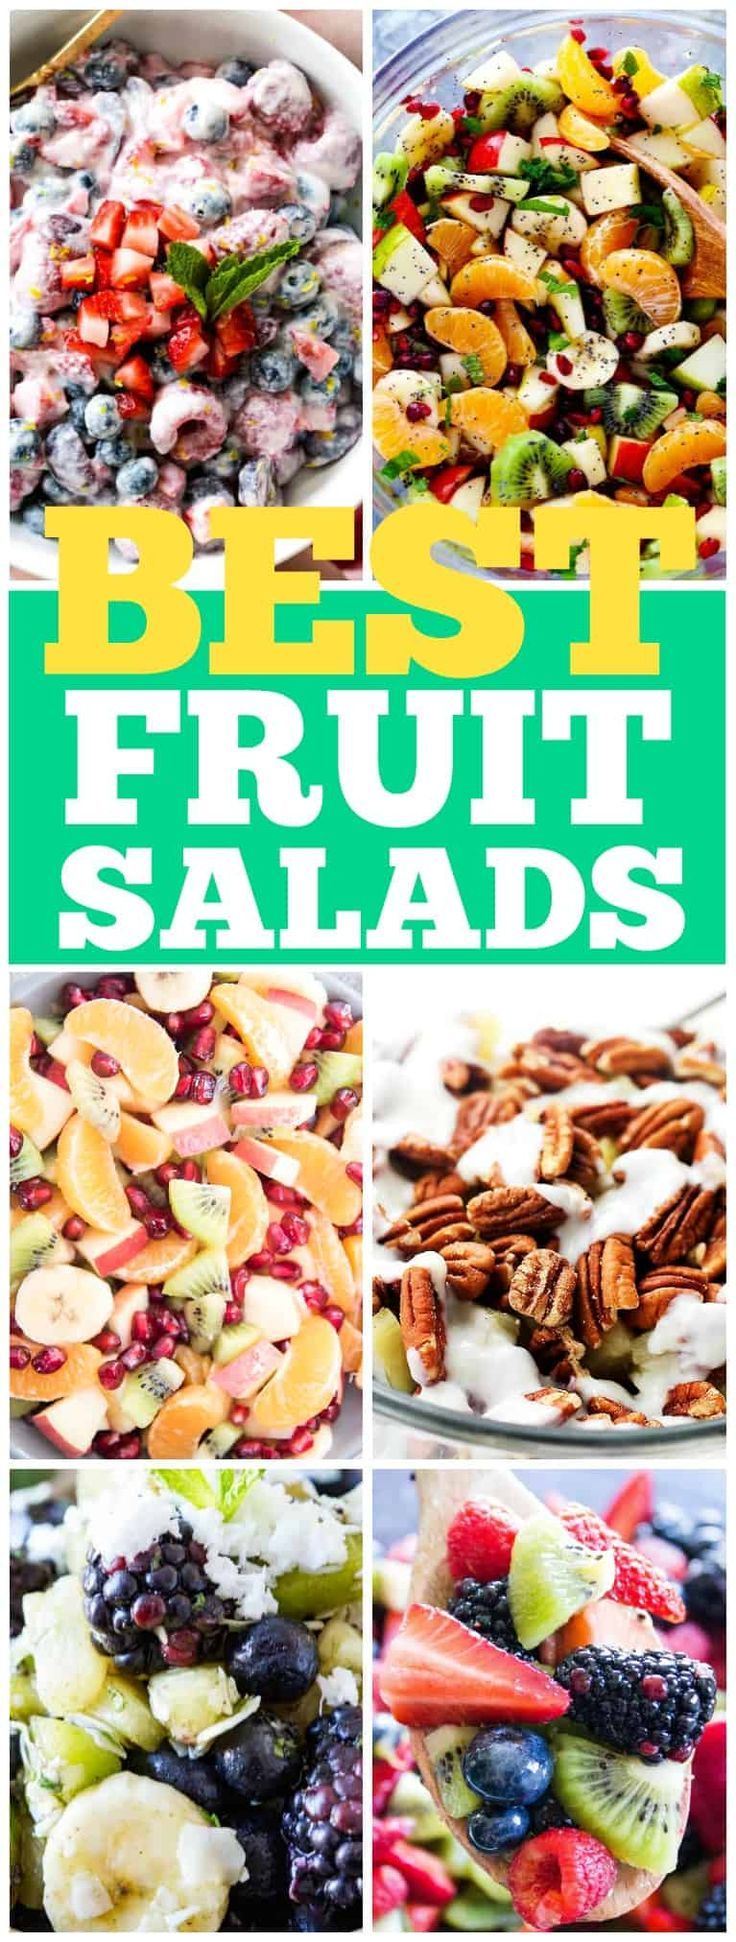 BEST FRUIT SALAD RECIPES that will fill your bowl with absolute deliciousness.The options are endless and all of the recipes easy to make! #dashofsanity #fruits #fruitsalad #salad #summer #food